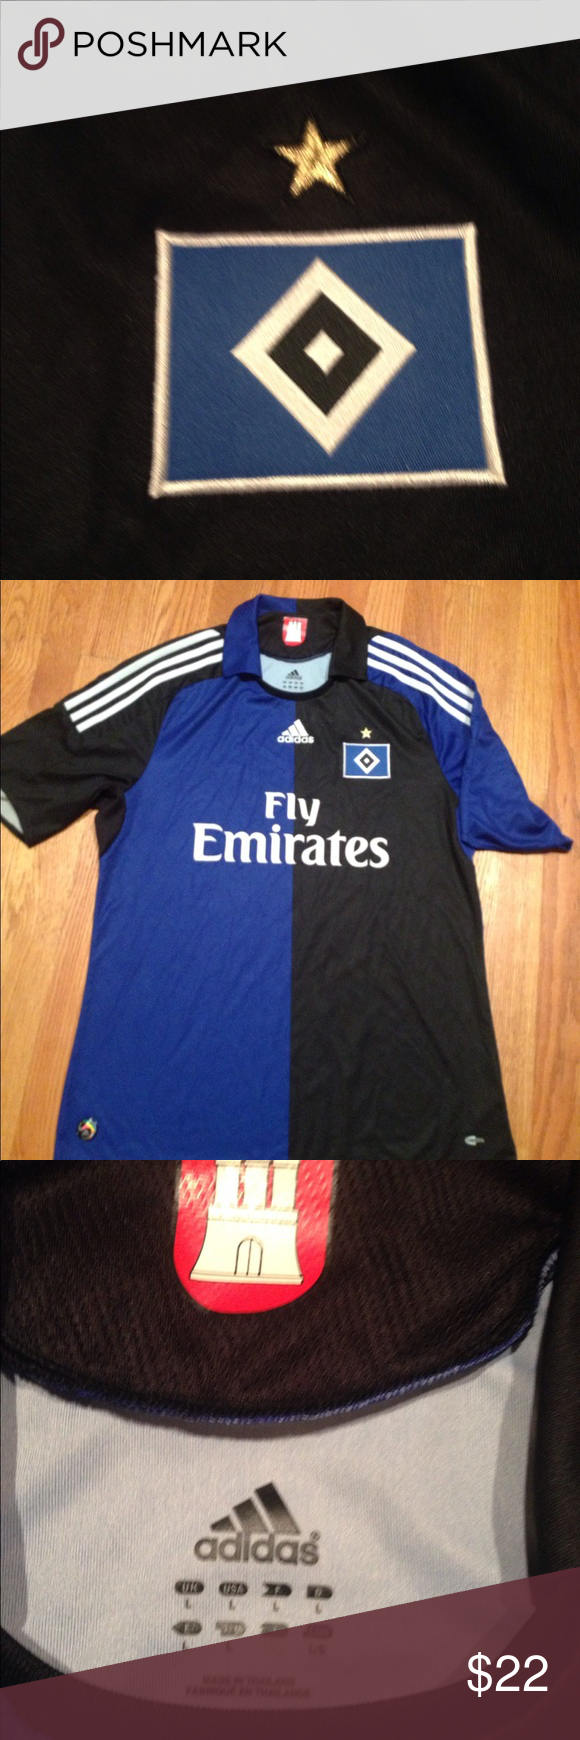 Adidas collared soccer jersey. Adidas size large 648c9e794